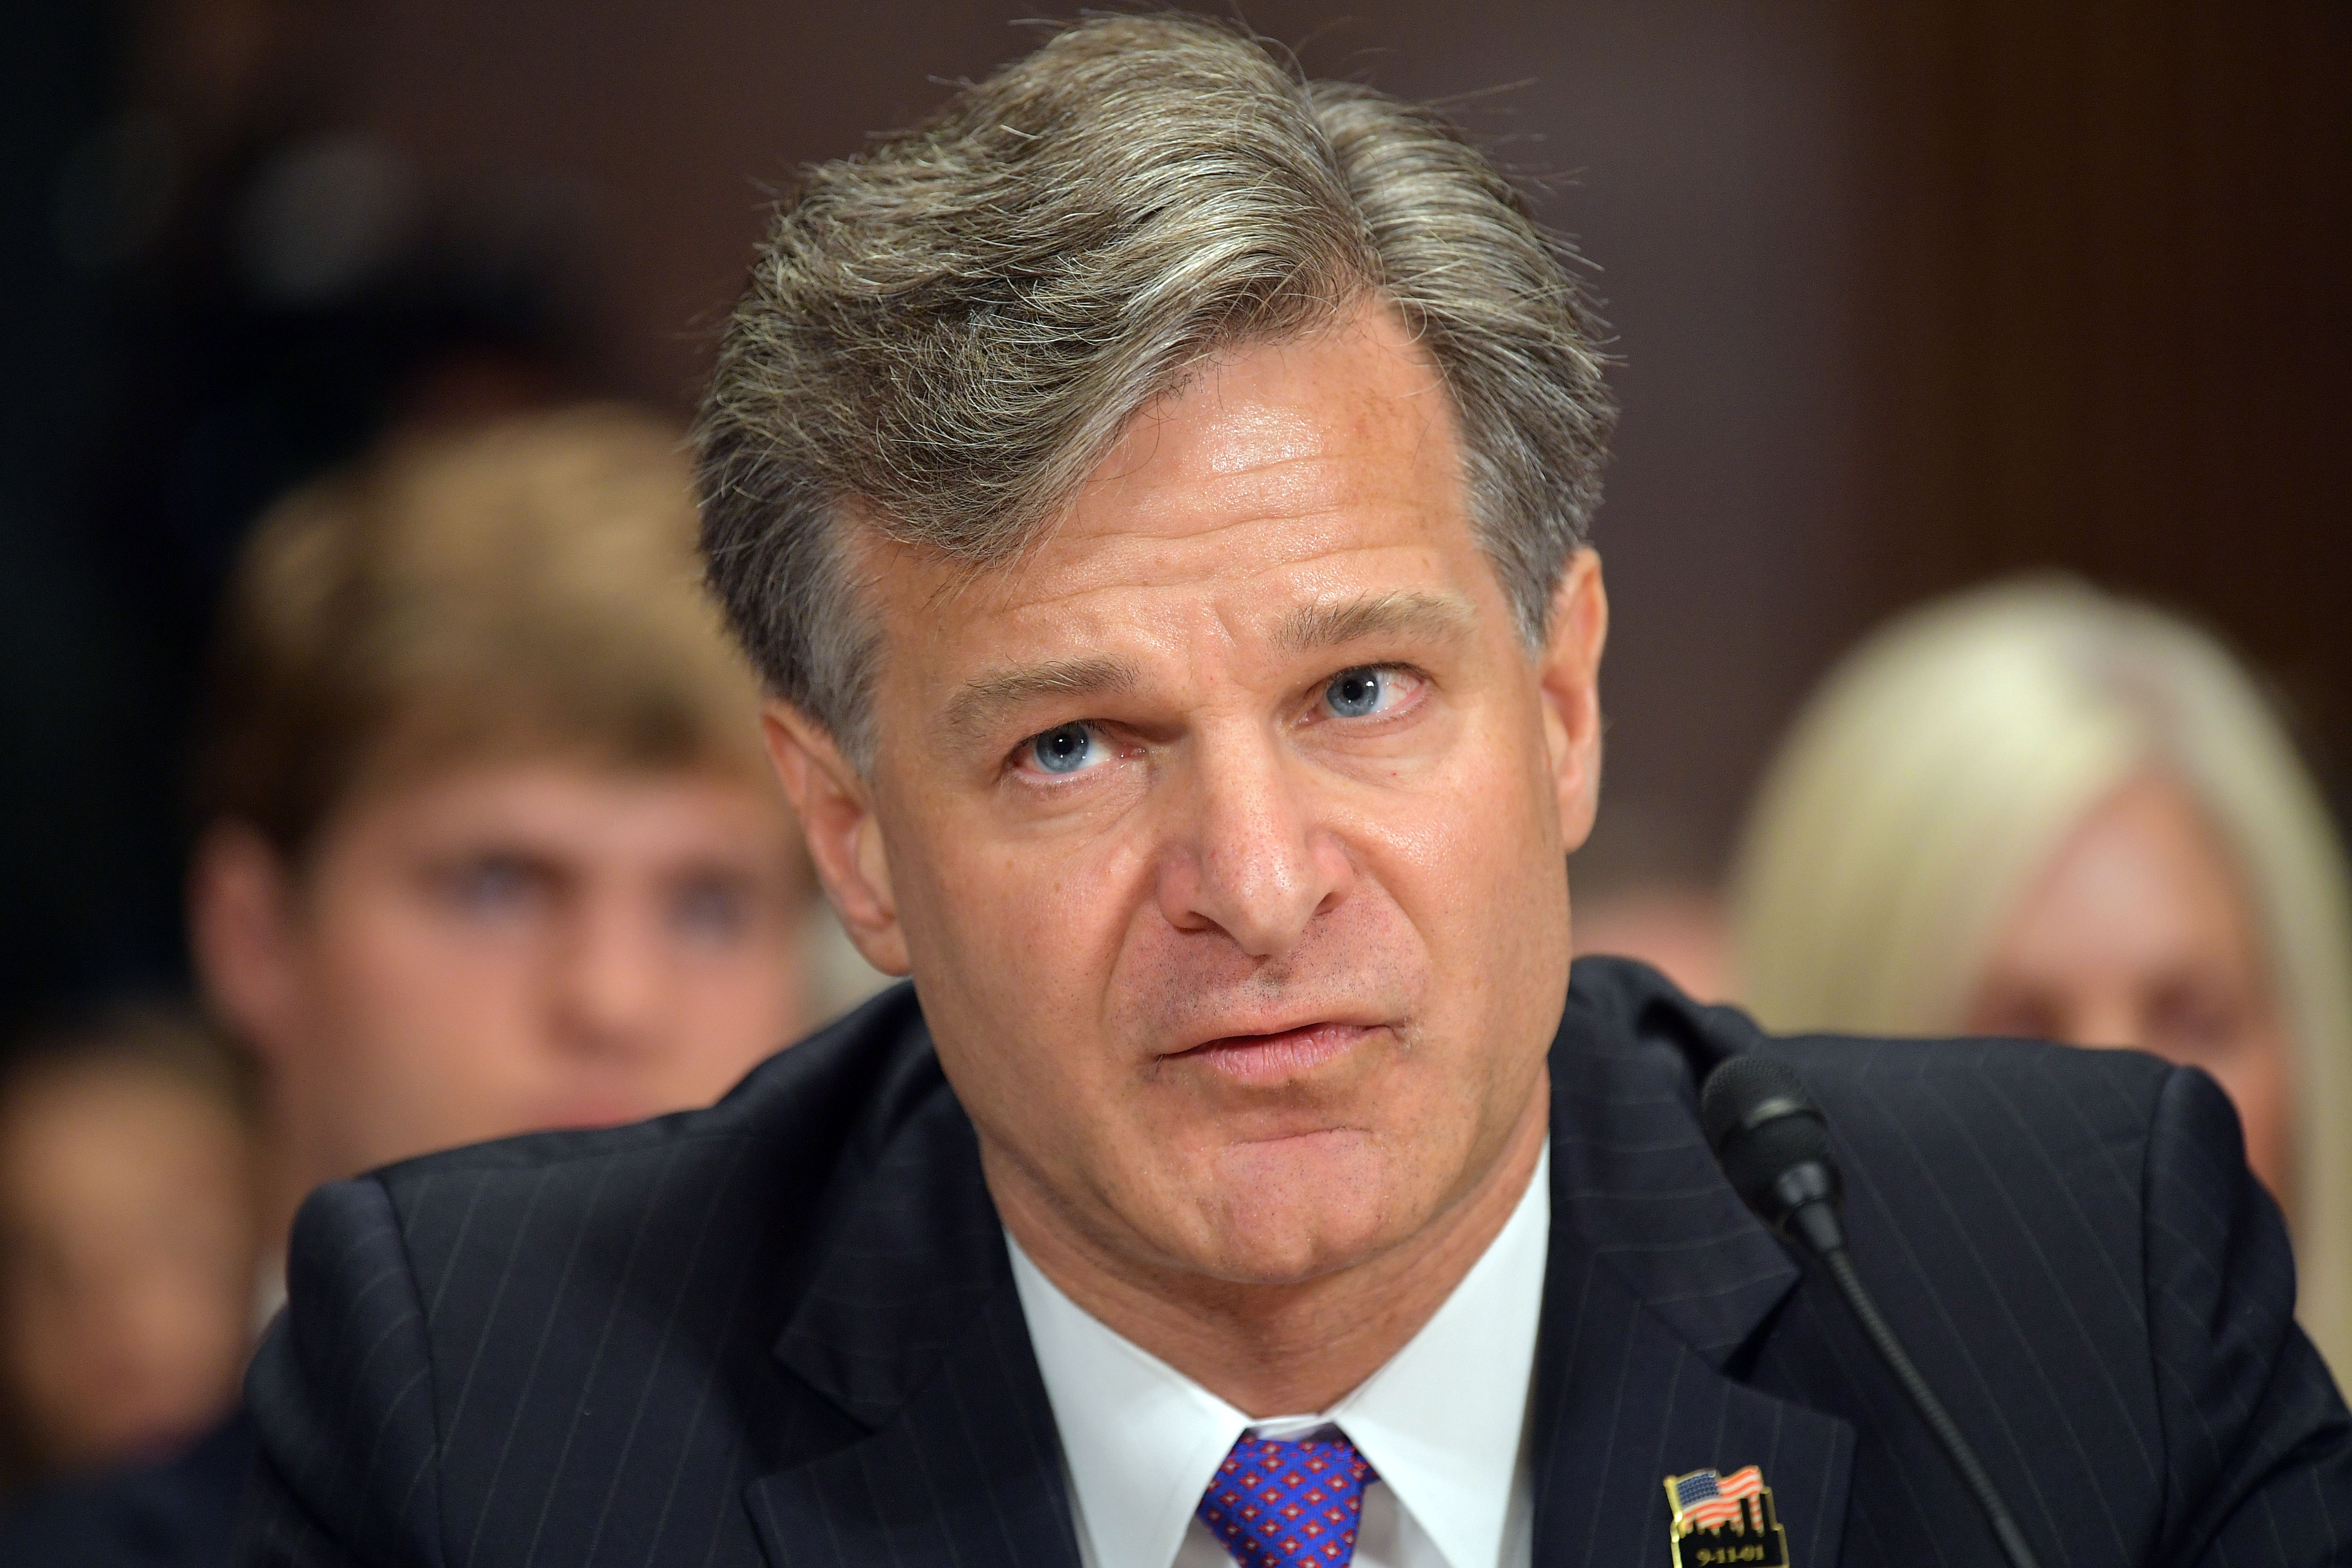 Christopher Wray testifies before the Senate Judiciary Committee on his nomination to be the director of the Federal Bureau of Investigation in the Dirksen Senate Office Building on Capitol Hill on July 12, 2017 in Washington,DC. (MANDEL NGAN/AFP/Getty Images)